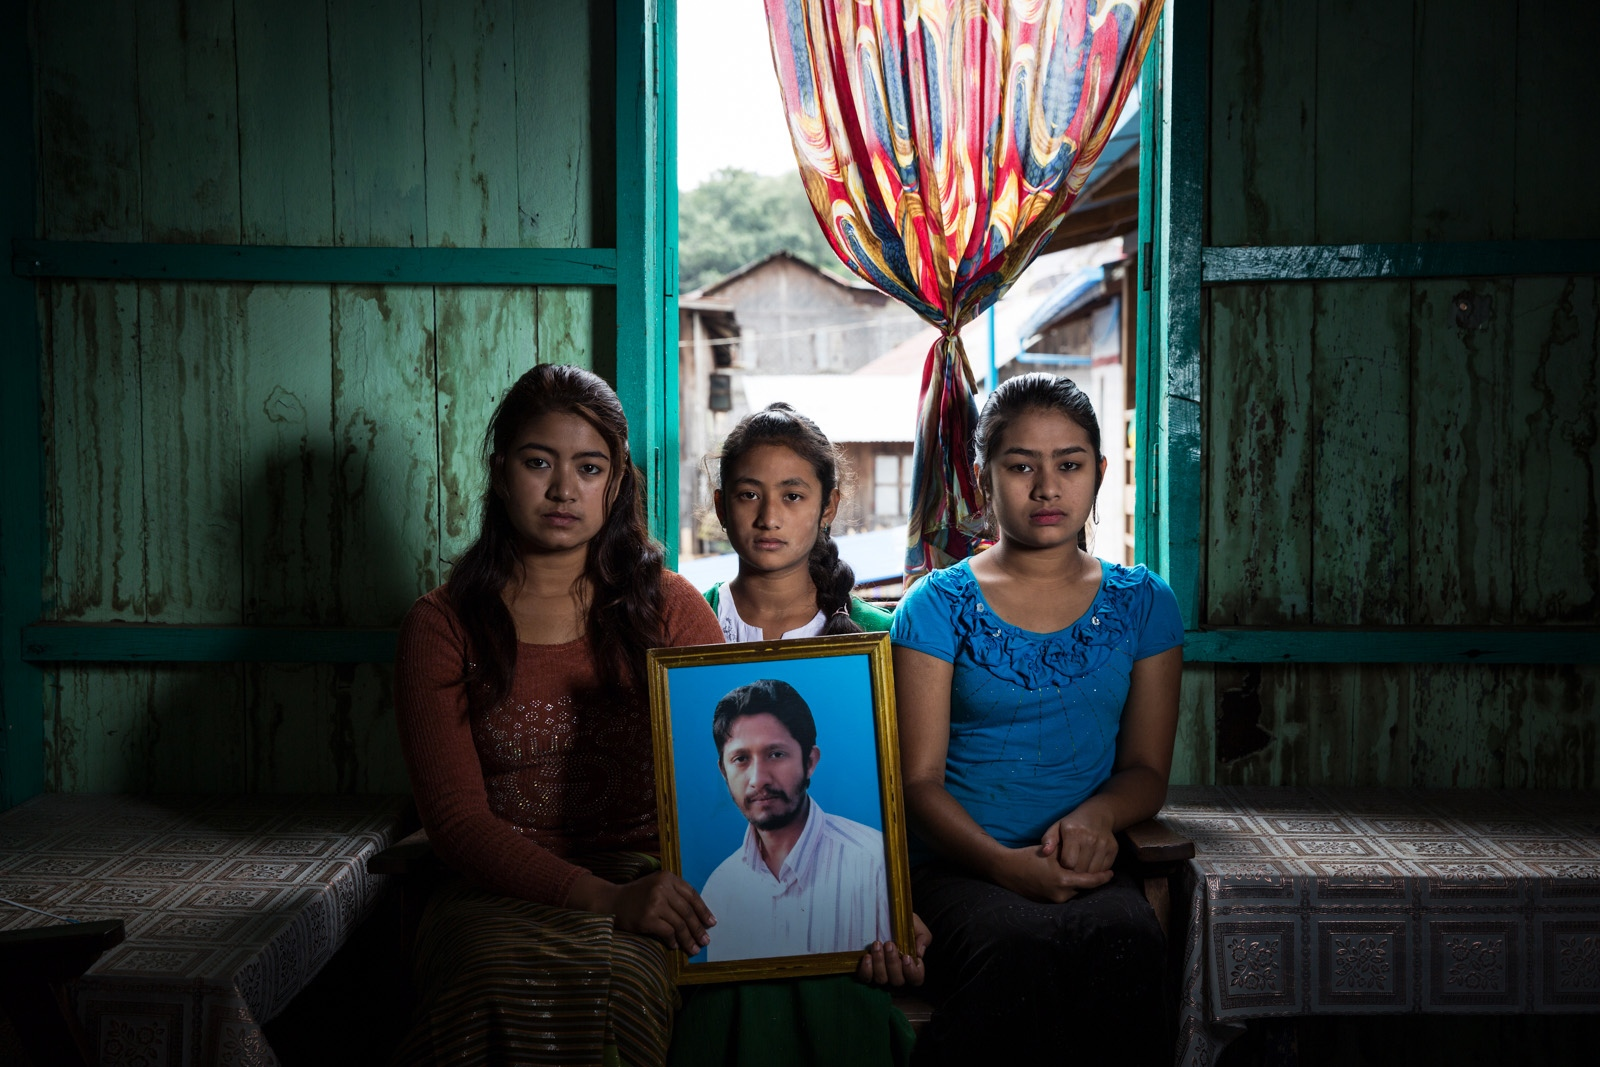 Three daughters hold the portrait of their arbitrarily detained father Htay Win. Myanmar military intelligence arrested Htay Win, 44, at his home in Taunggyi in Shan State. He was beaten and arrested in front of his family. The Taunggyi District Court sentenced him in a trial that failed to meet fair trial standards to 14 years' imprisonment with hard labor under sections 5(J) and 5(L) of the 1950 Emergency Provisions Act. In October 2016, the Myanmar government repealed the notoriously controversial 1950 Emergency Provisions Act, yet Htay Win and others remain detained under the now defunct Act.